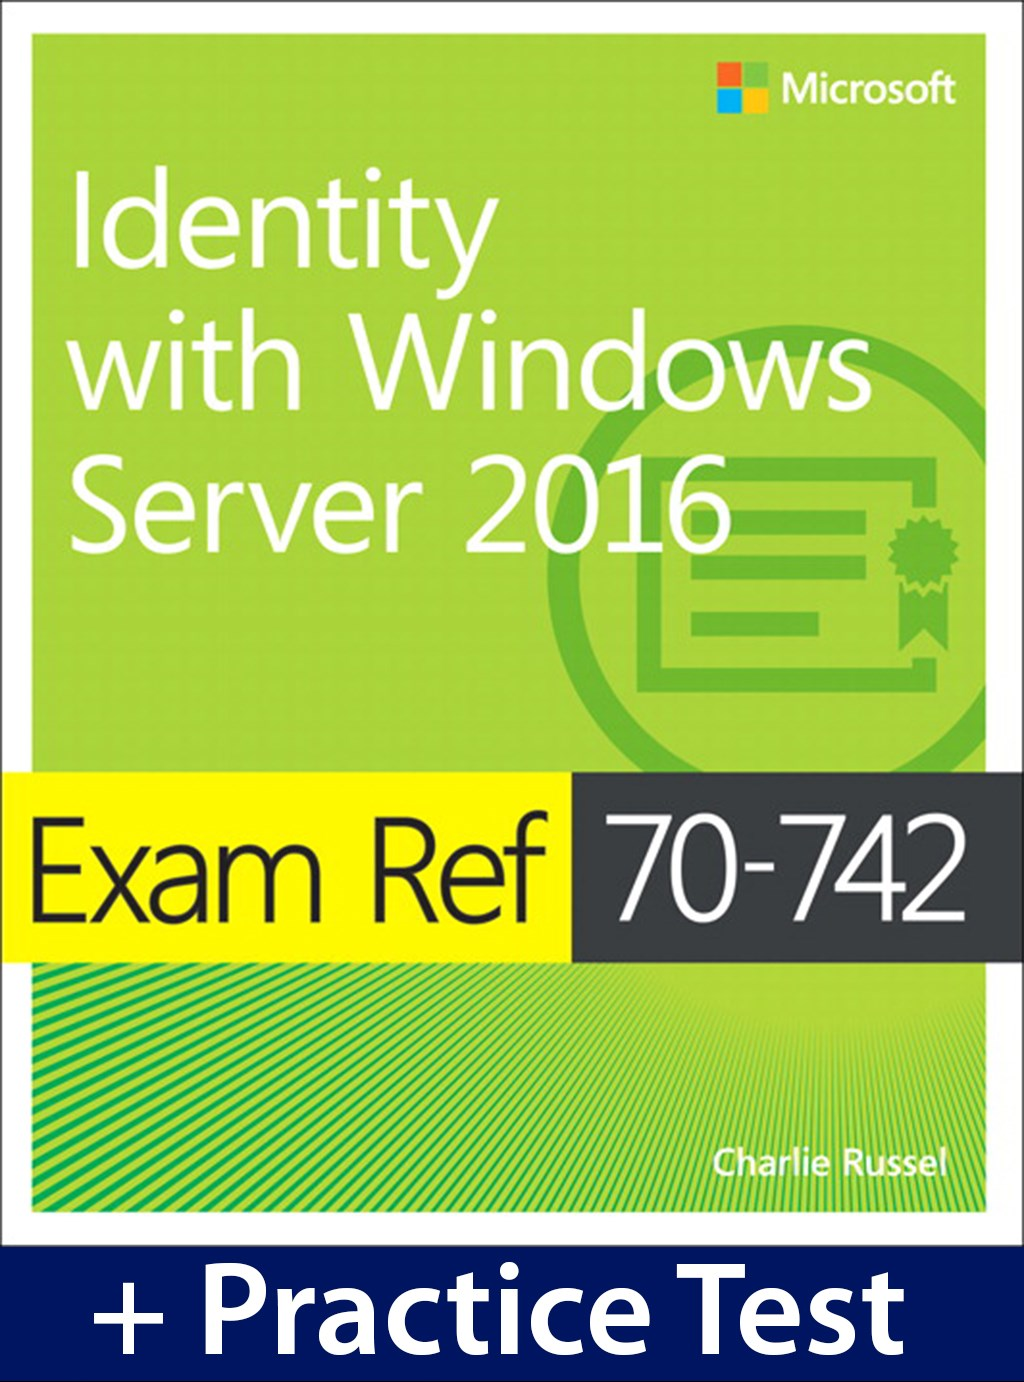 Exam Ref 70-742 Identity with Windows Server 2016 with Practice Test